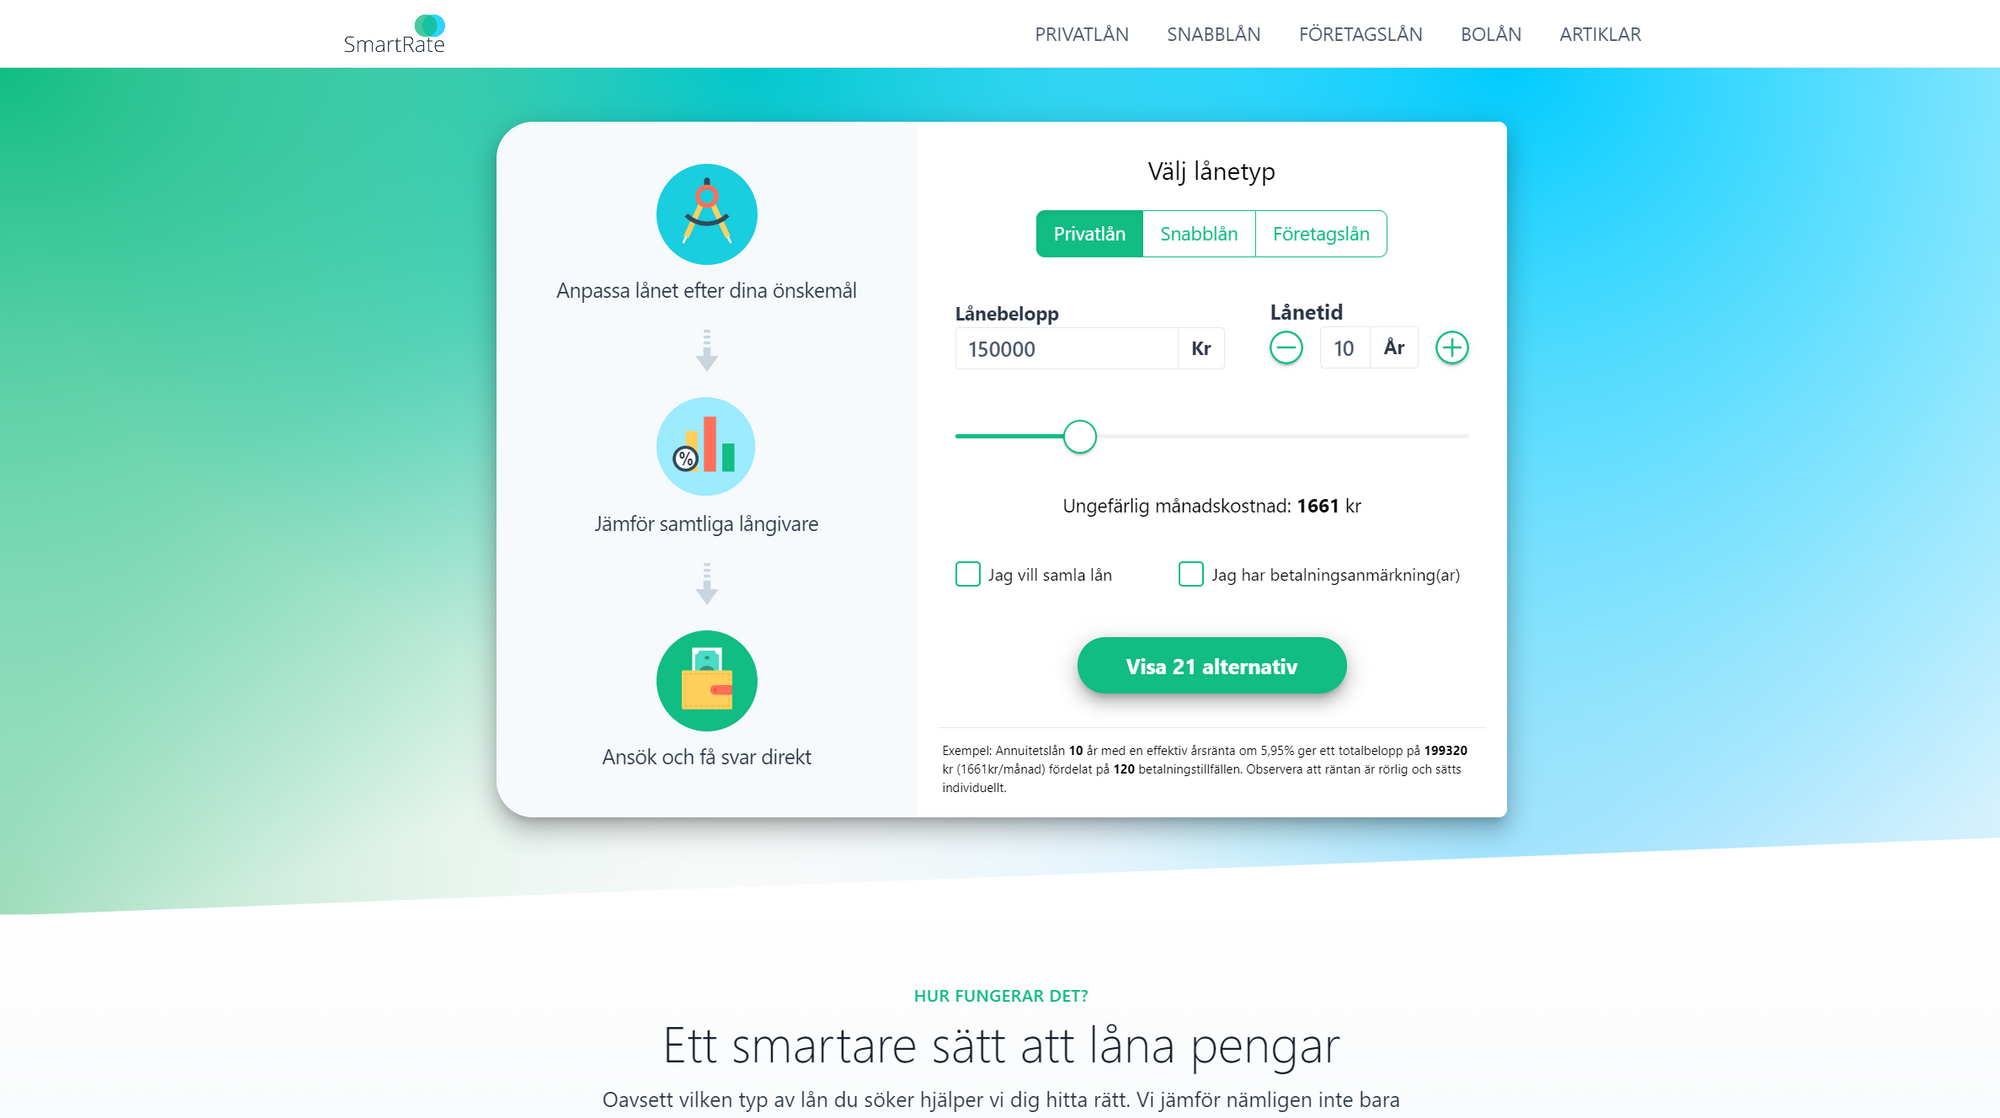 A screenshot of the SmartRate landing page